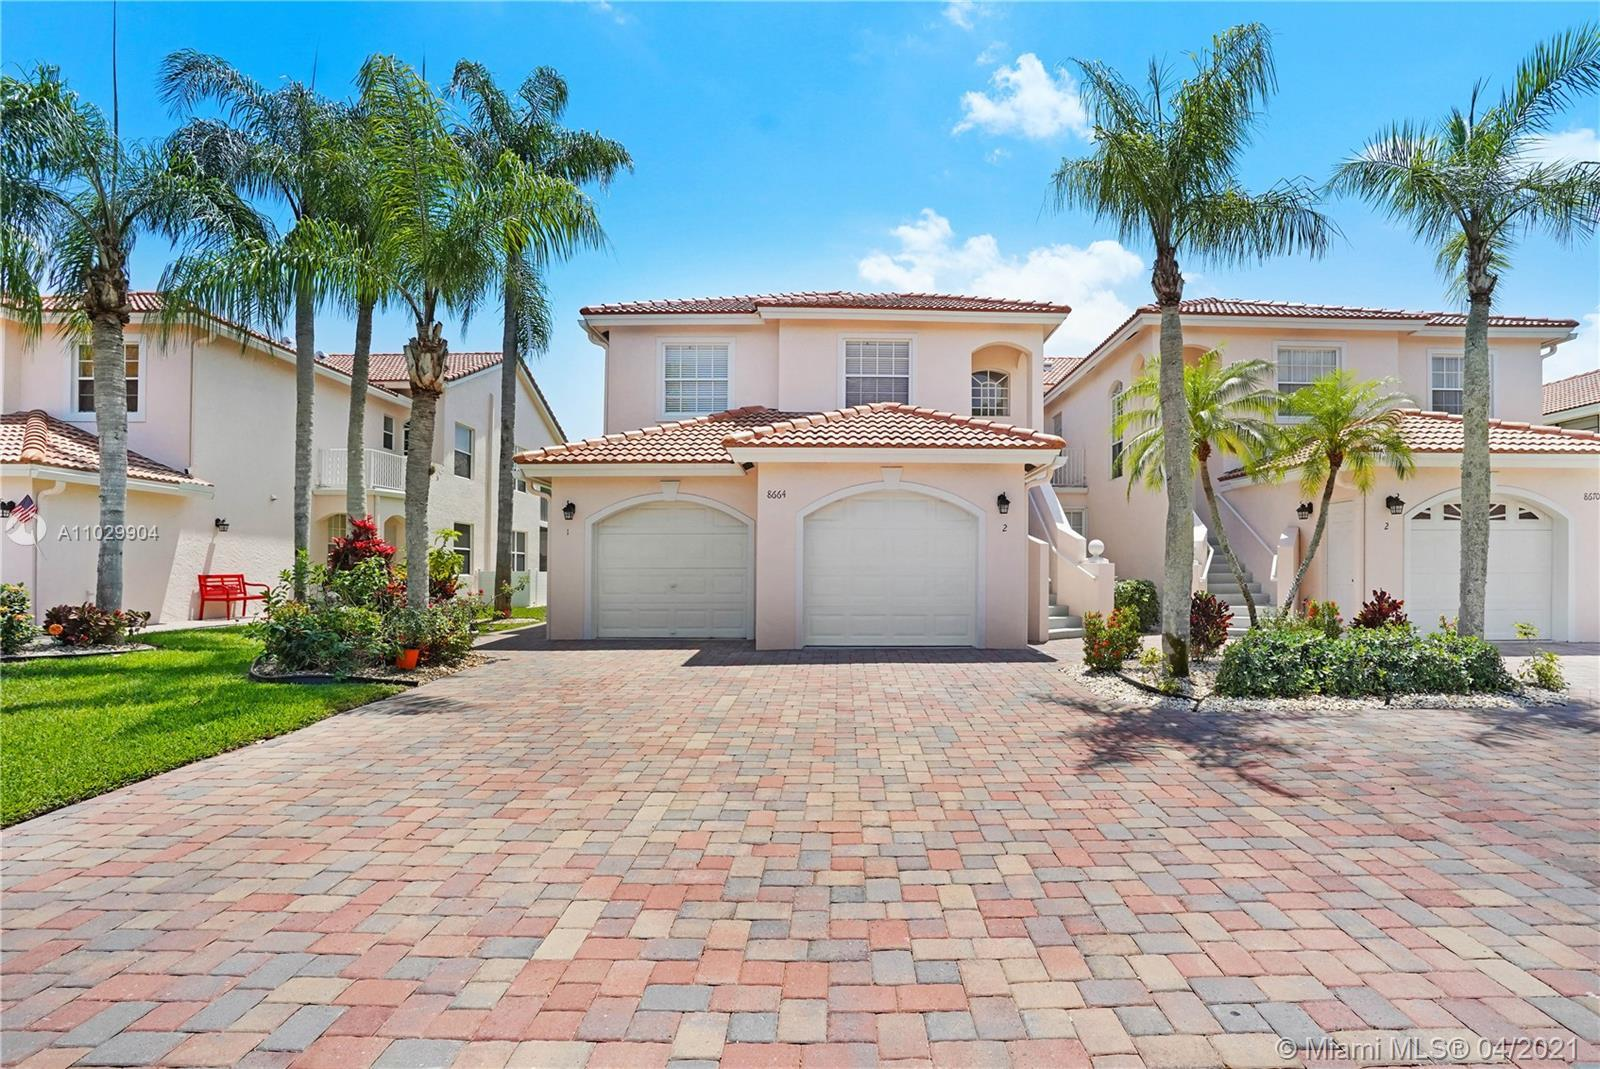 Boca living at its finest!  Bright and open 3 bedroom, 2 bath coach home in the heart of Boca! You w